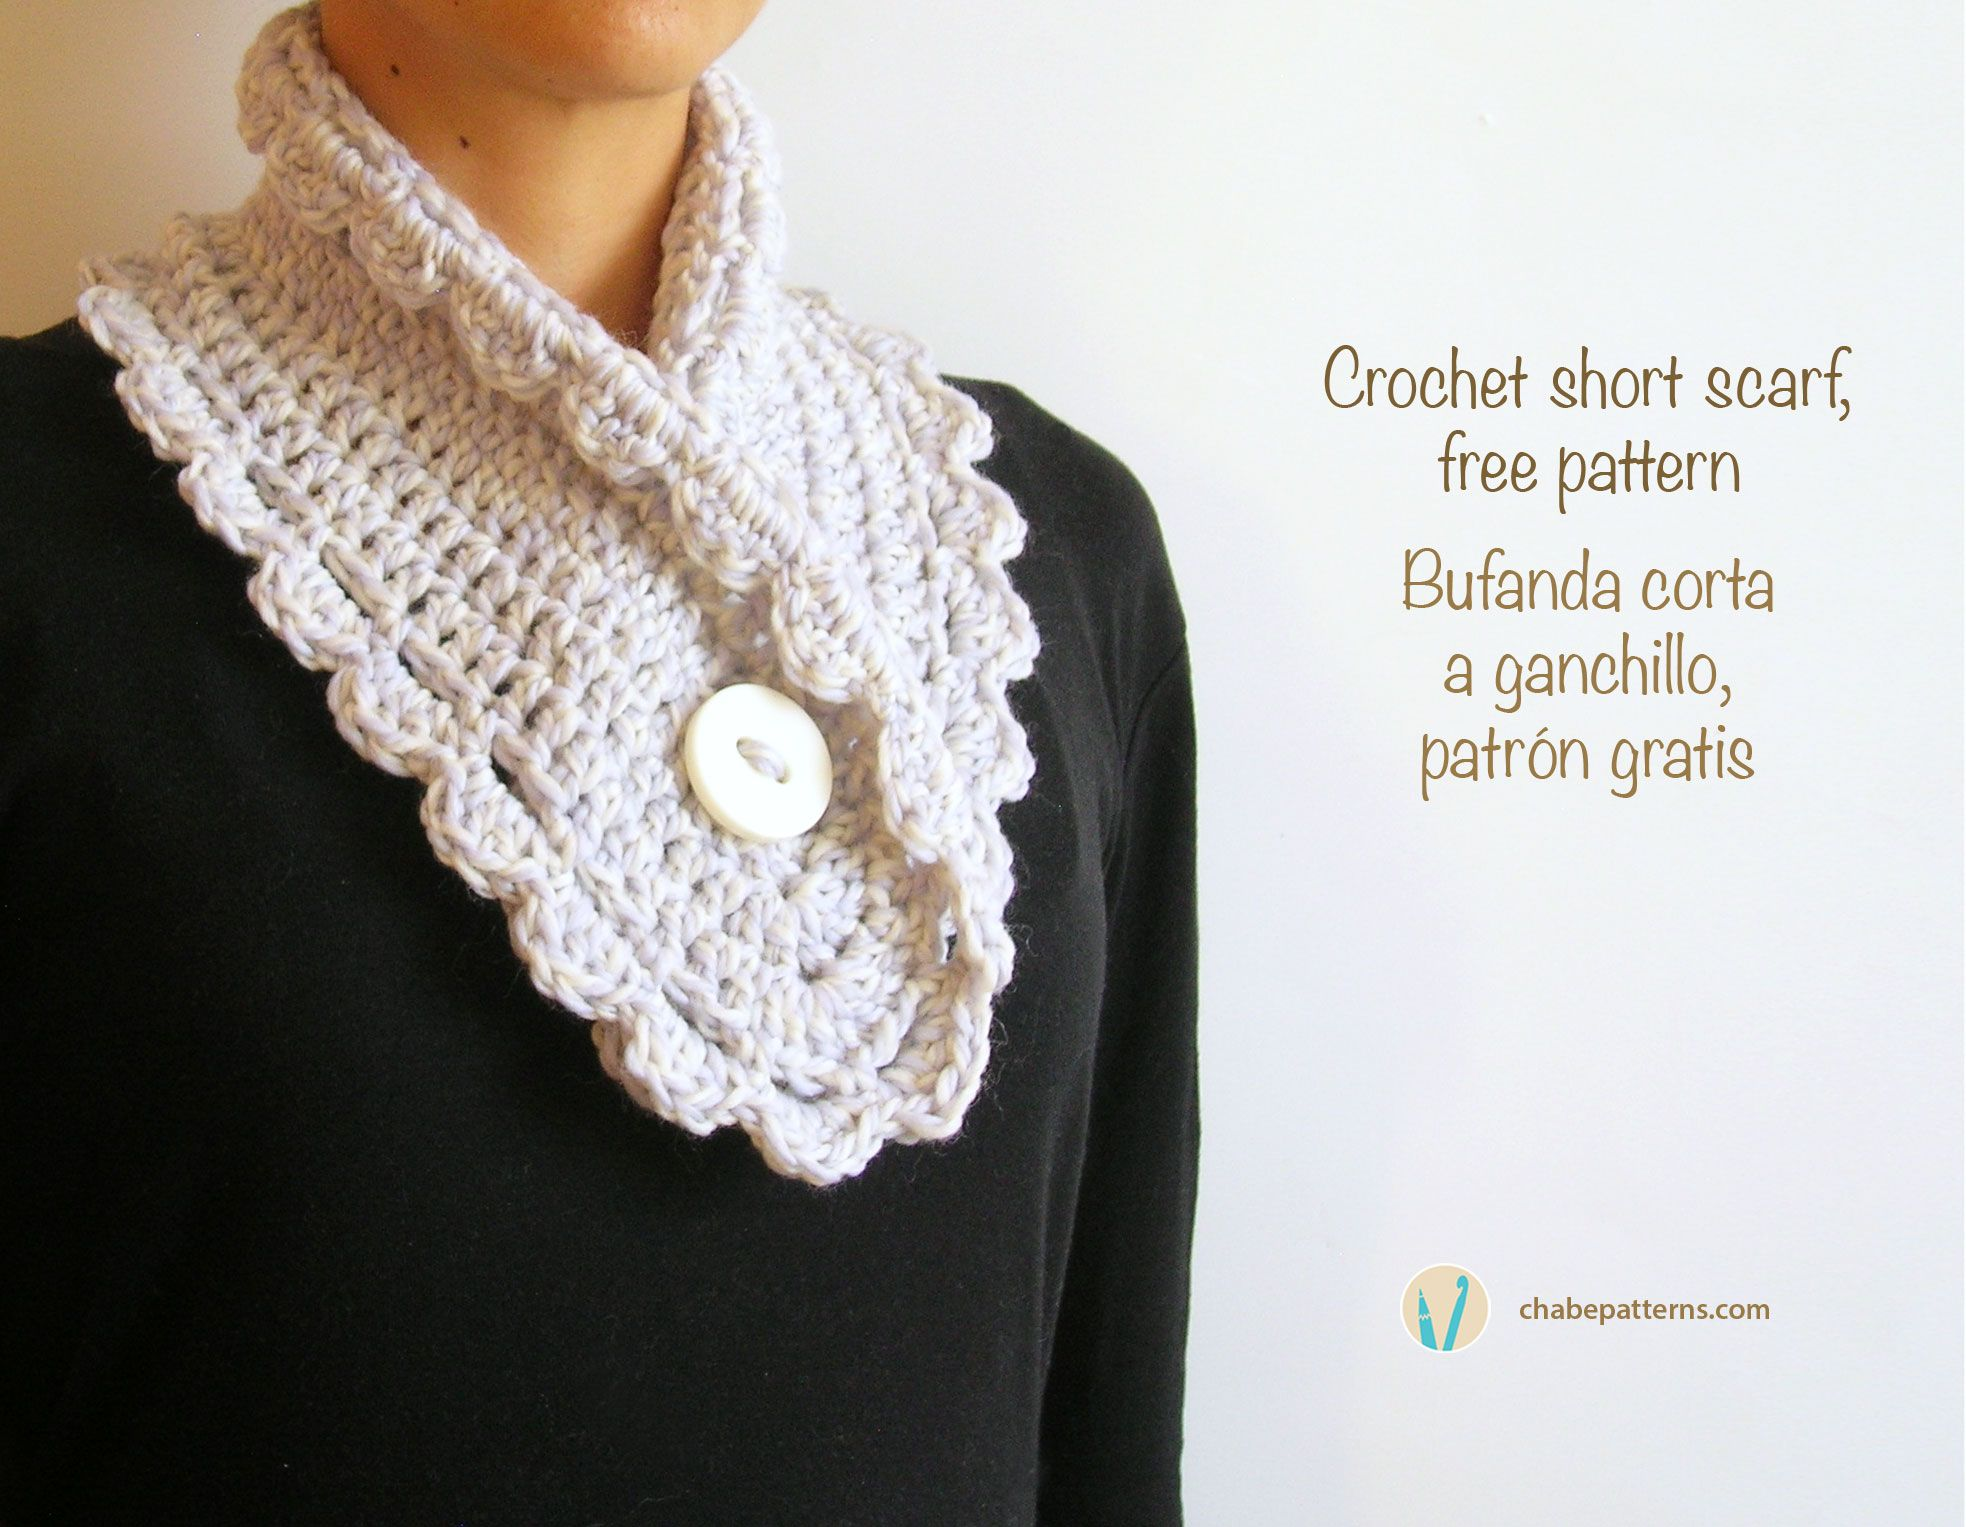 Free crochet pattern, chart with symbols and written instructions ...